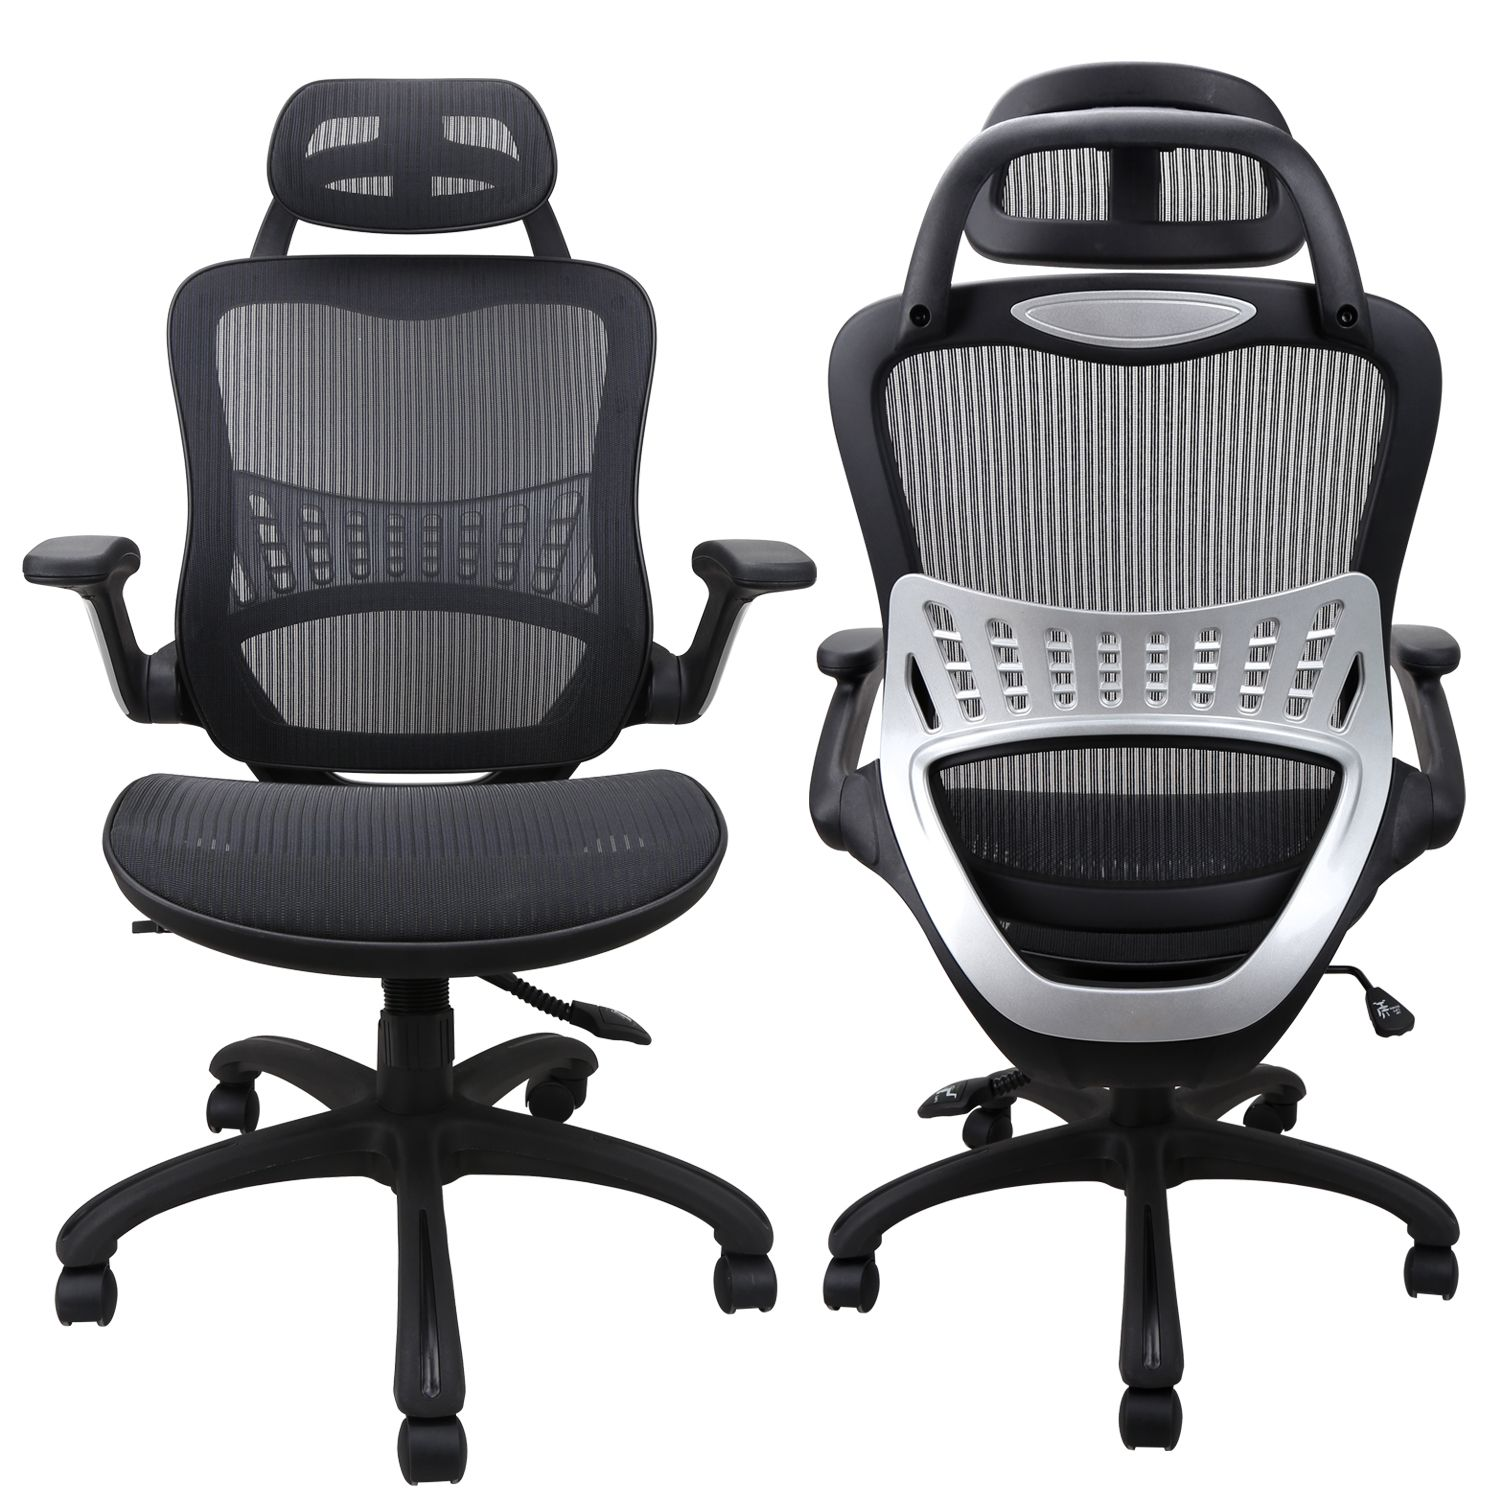 Ergonomic Computer Chair With Back Support Black With Sponge Cushion Get Yours Komene Com Ergonomic Chair Ergonomic Office Chair Ergonomic Office